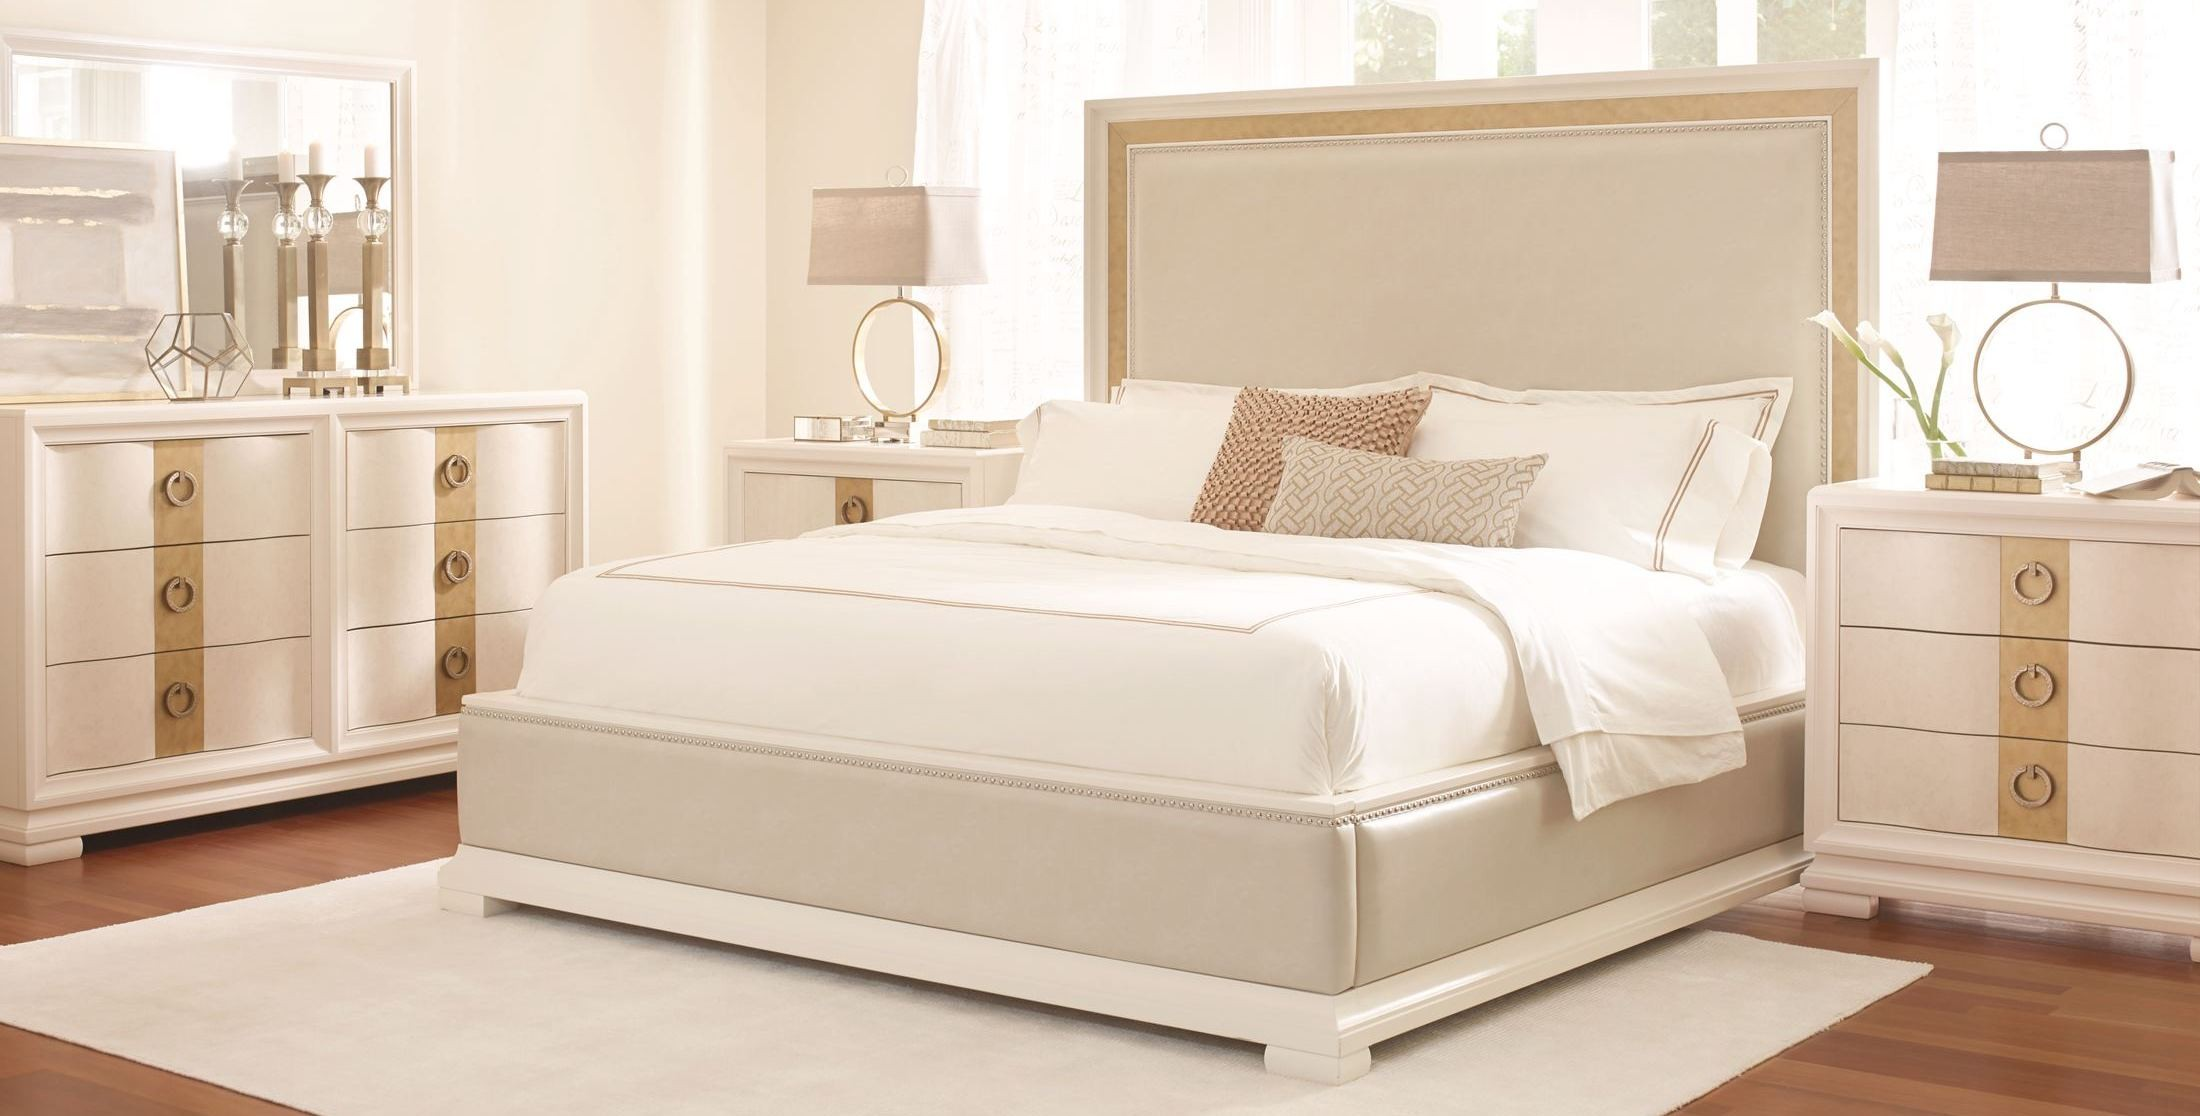 Pearl Bedroom Set 28 Images Cassimore Pearl Silver Sleigh Bedroom Set Bedroom Sets Pearl